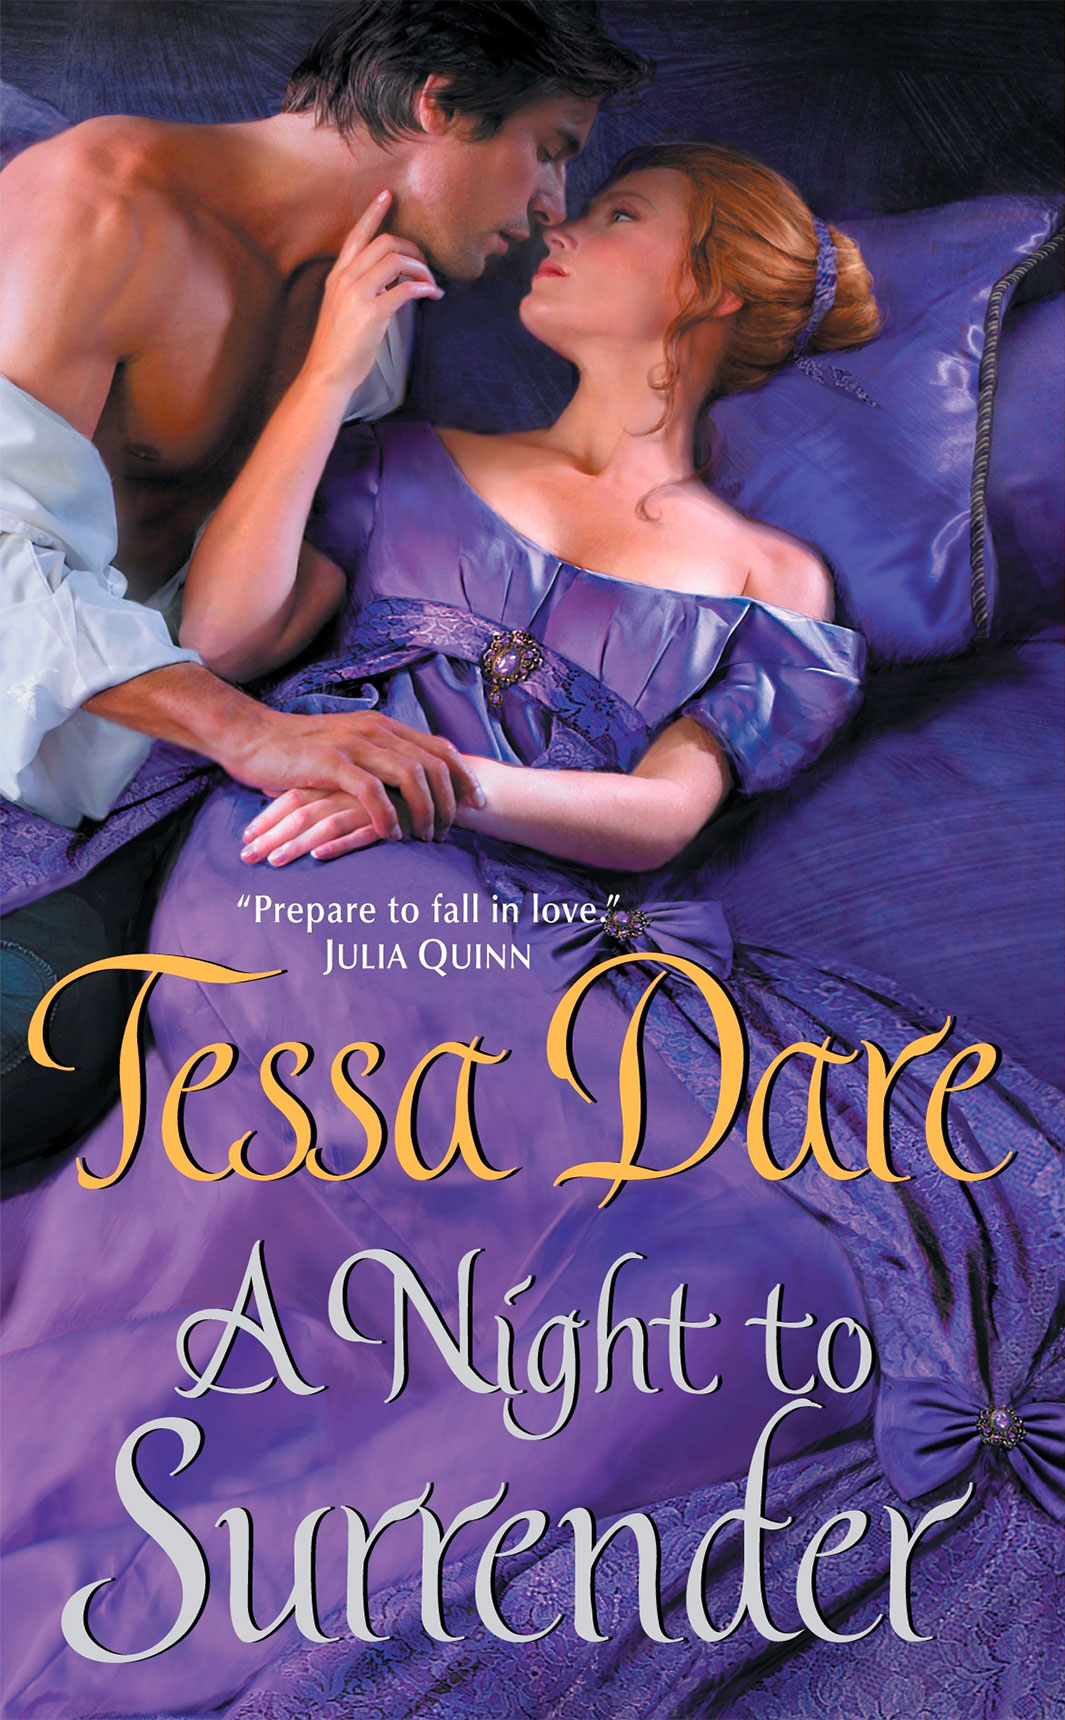 a-night-to-surrender-by-tessa-dare-romance-novels